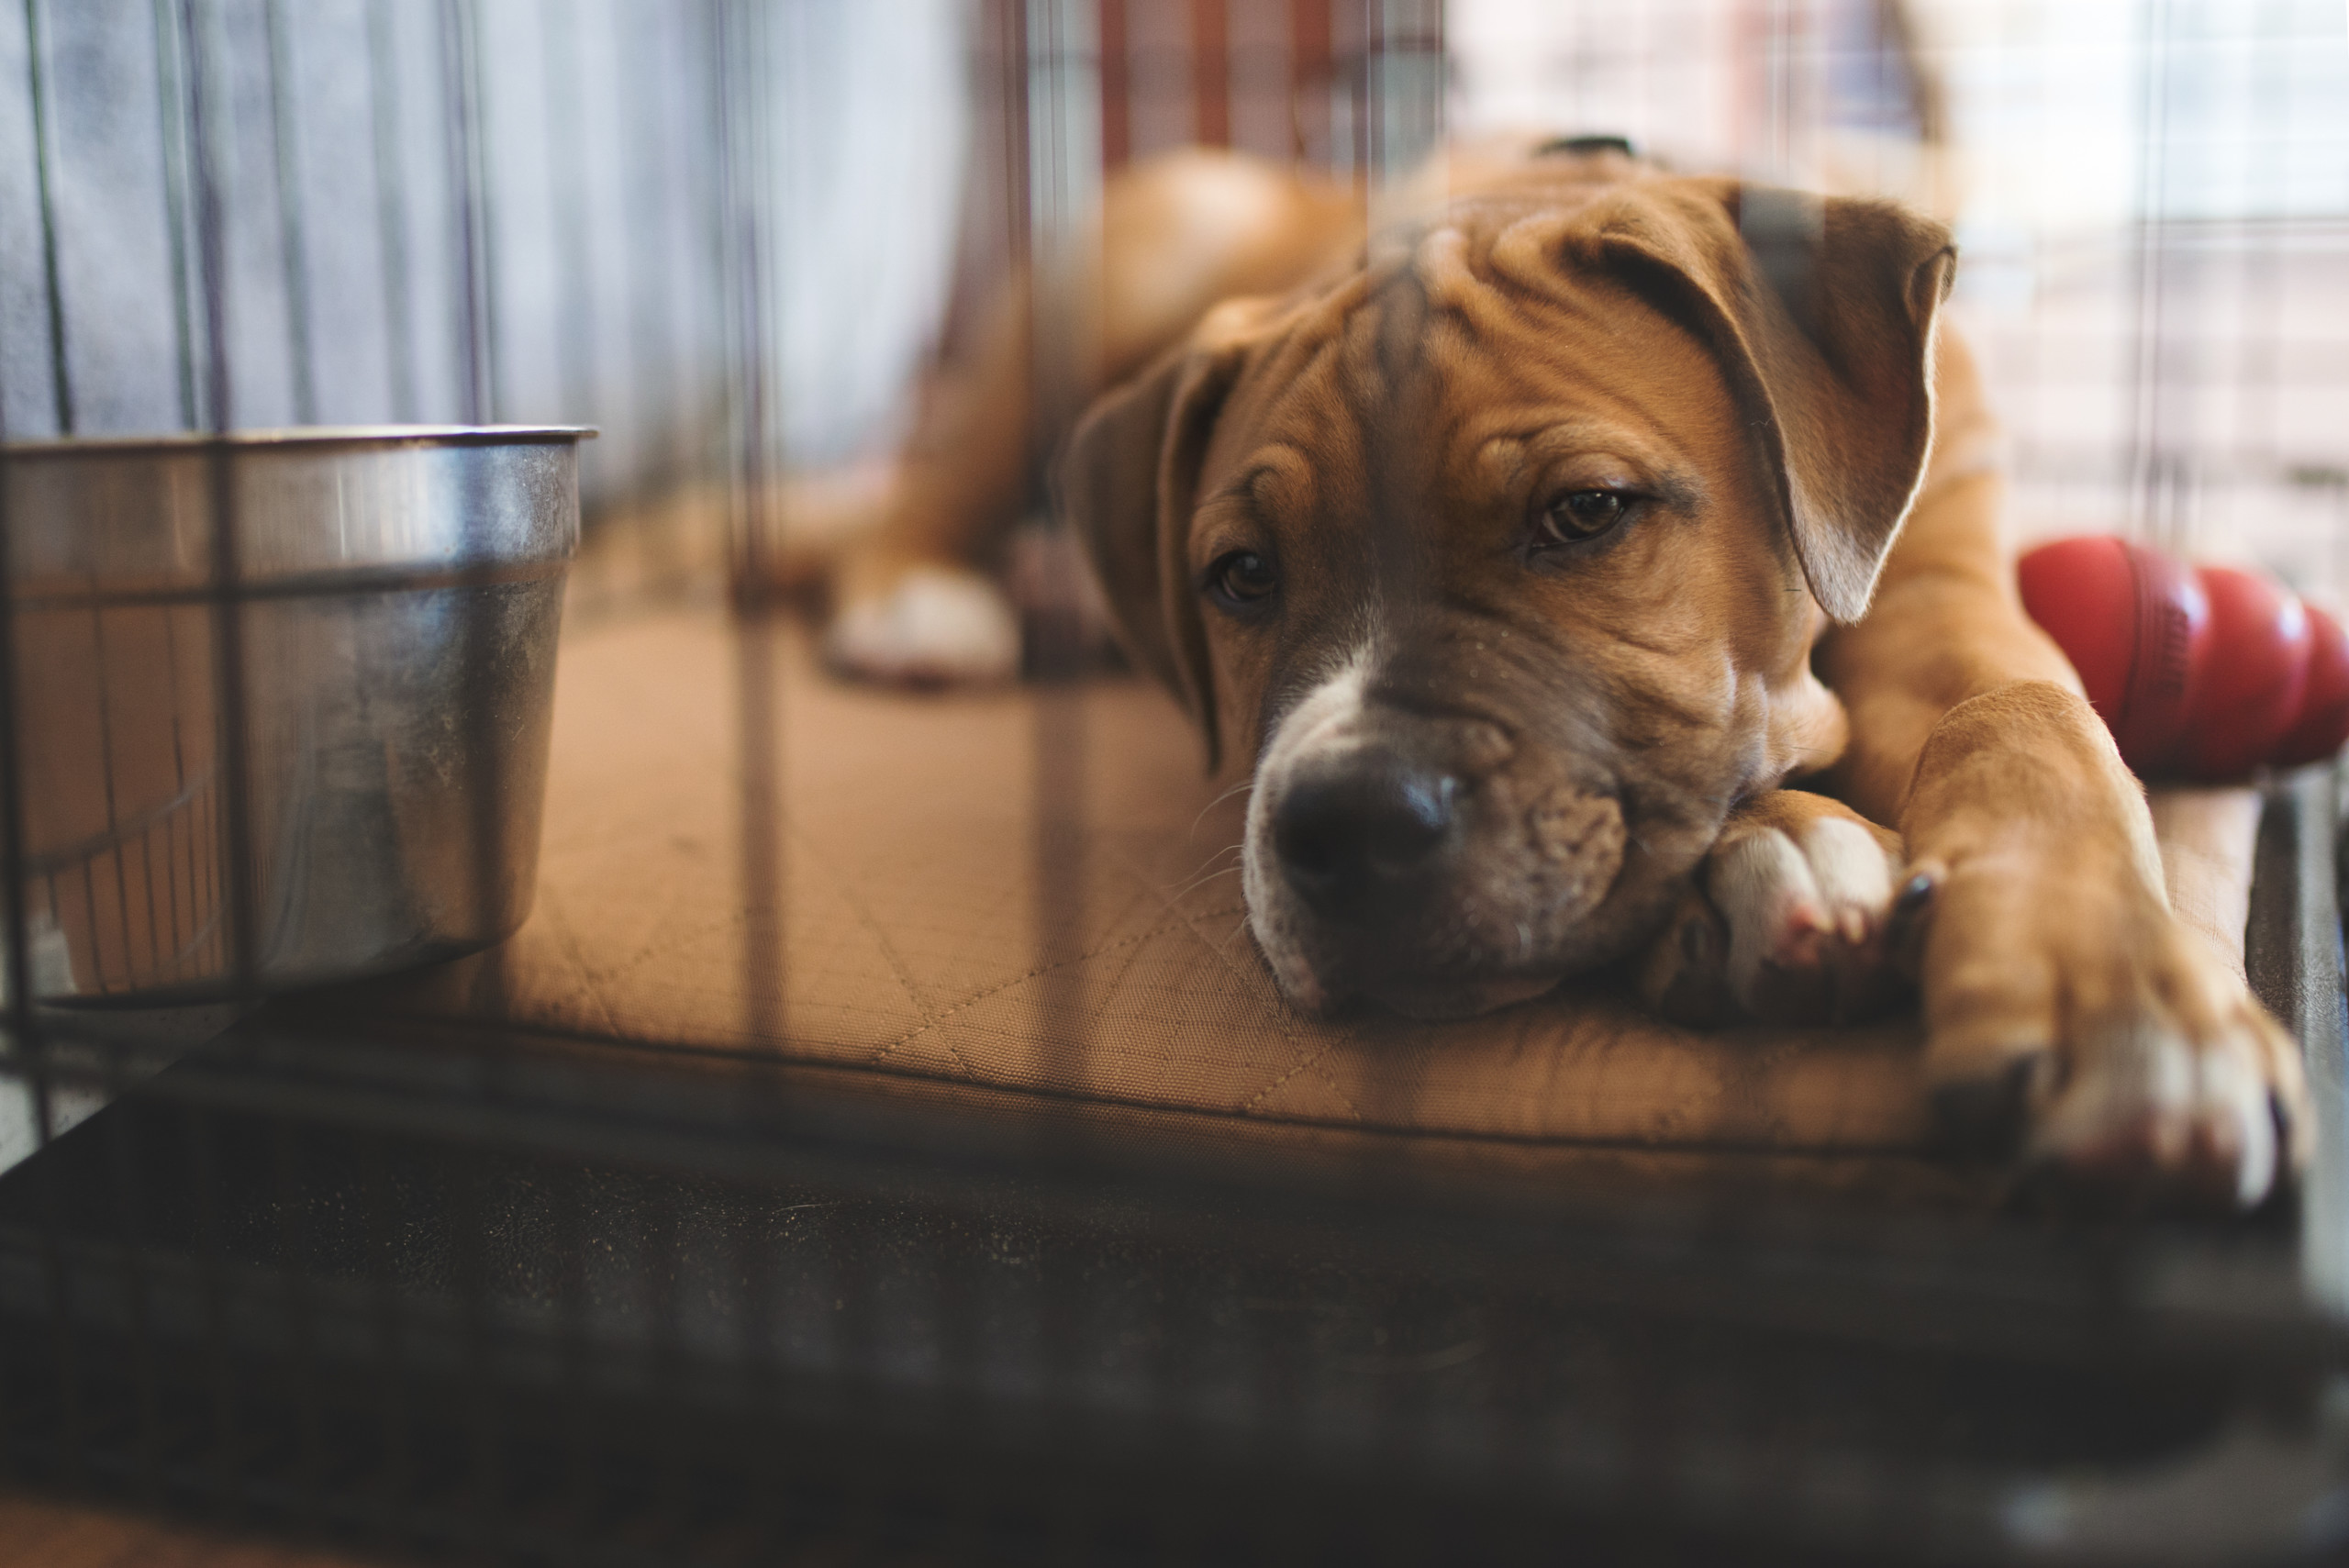 What To Do About Your Pandemic Pets